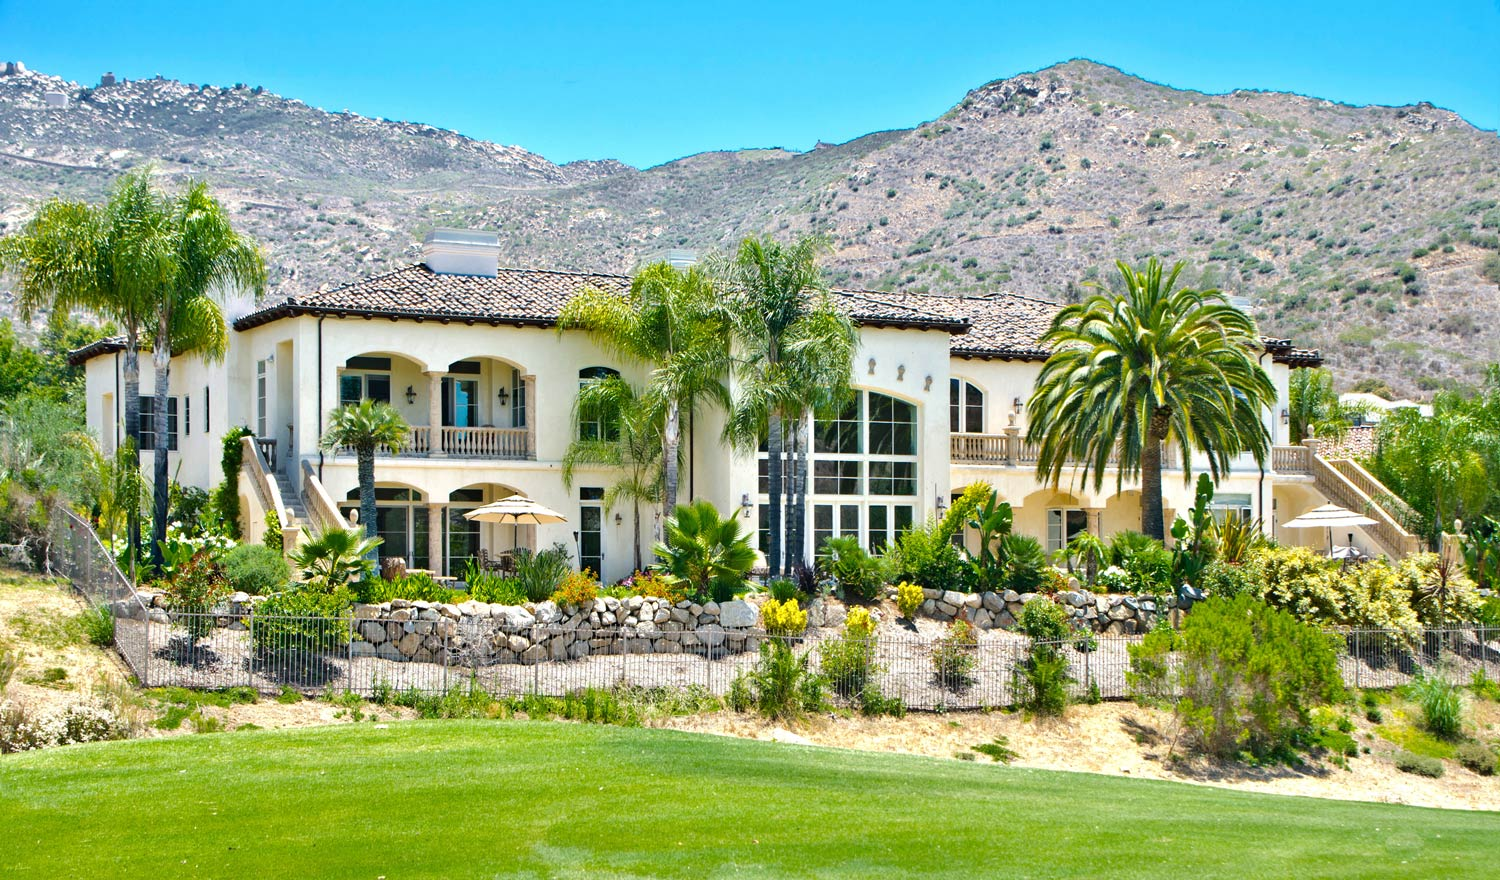 An entertainer's dream home, this 7 bedrooom, 8 bath sprawling property offers stunning views of the Maderas Golf Course and has a billiards room, theater area, wine tasting cellar, and even an elevator.